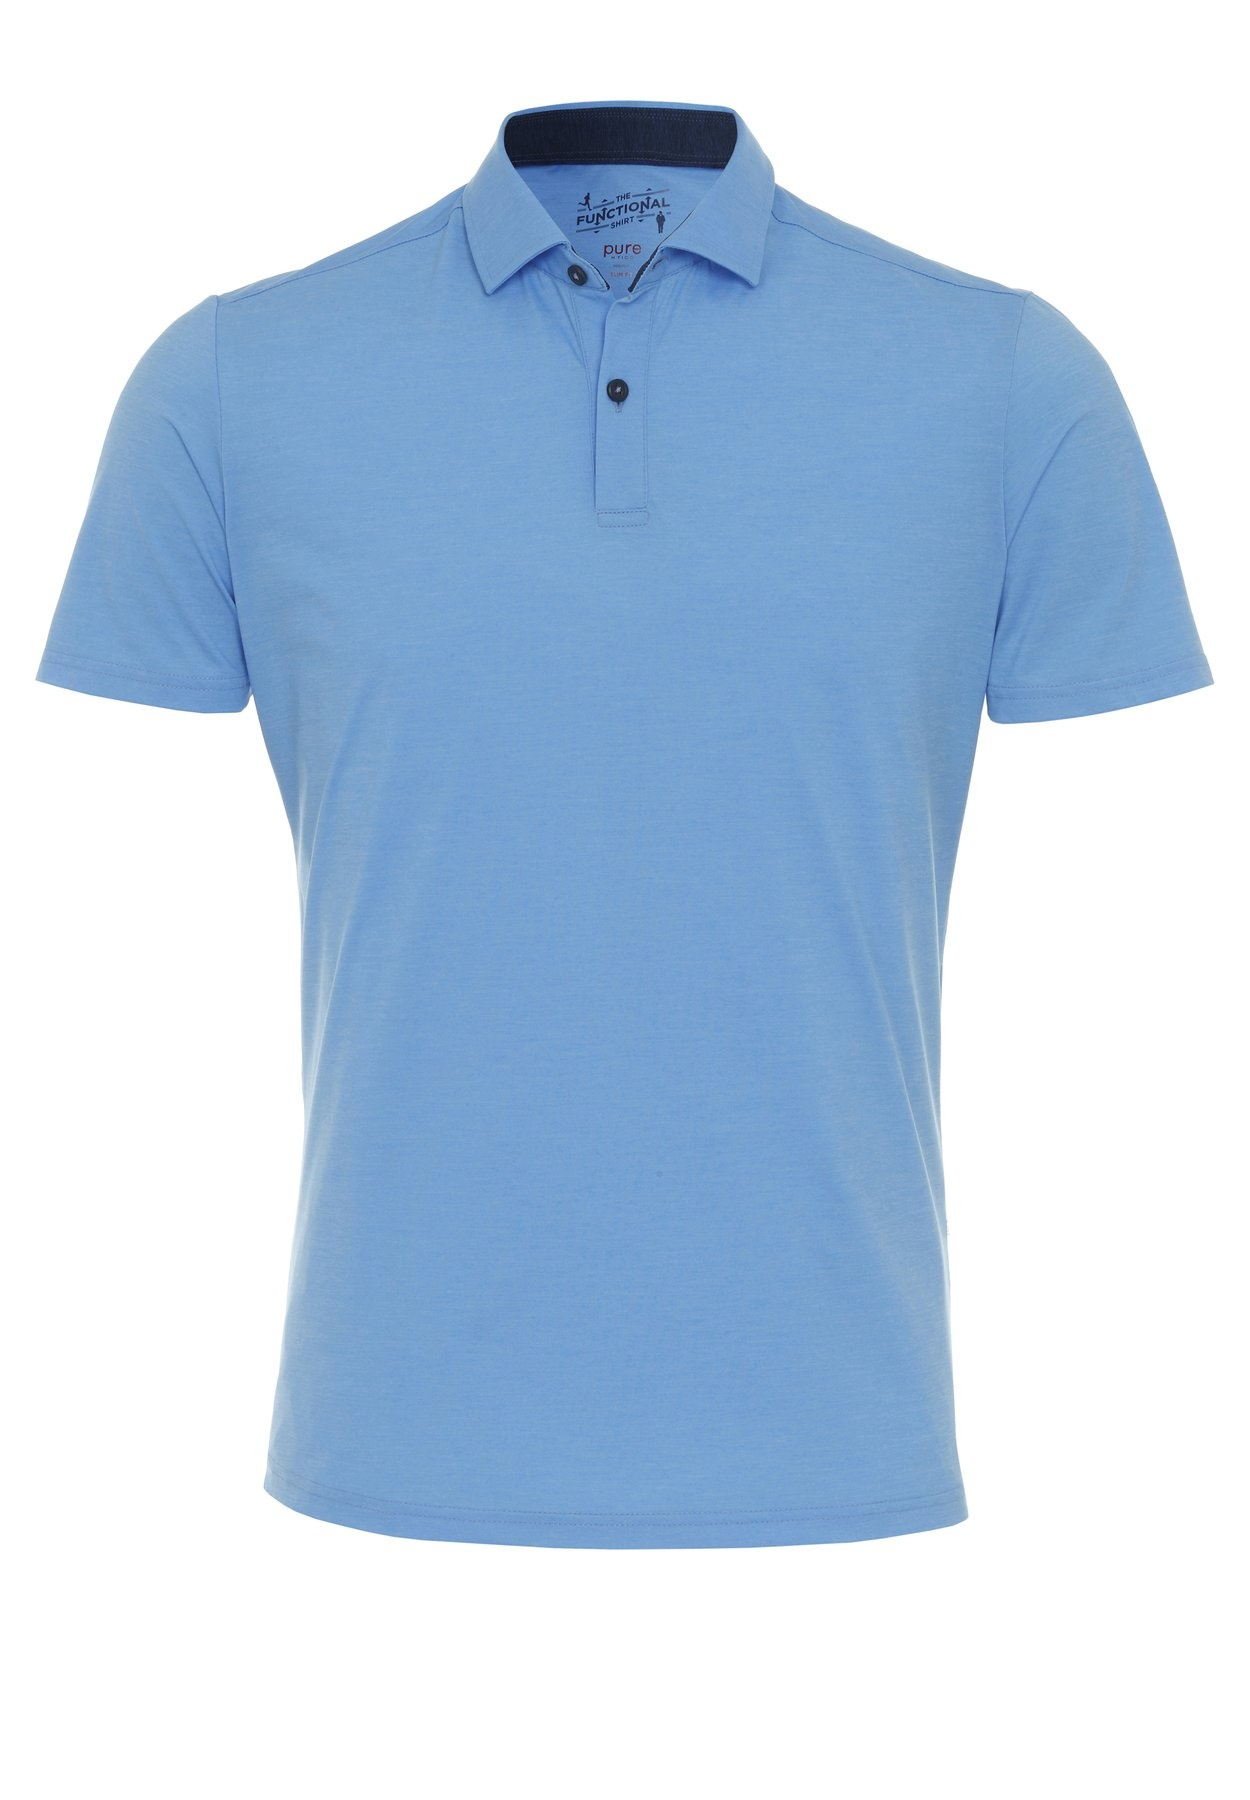 The Functional Polo - Slim Fit